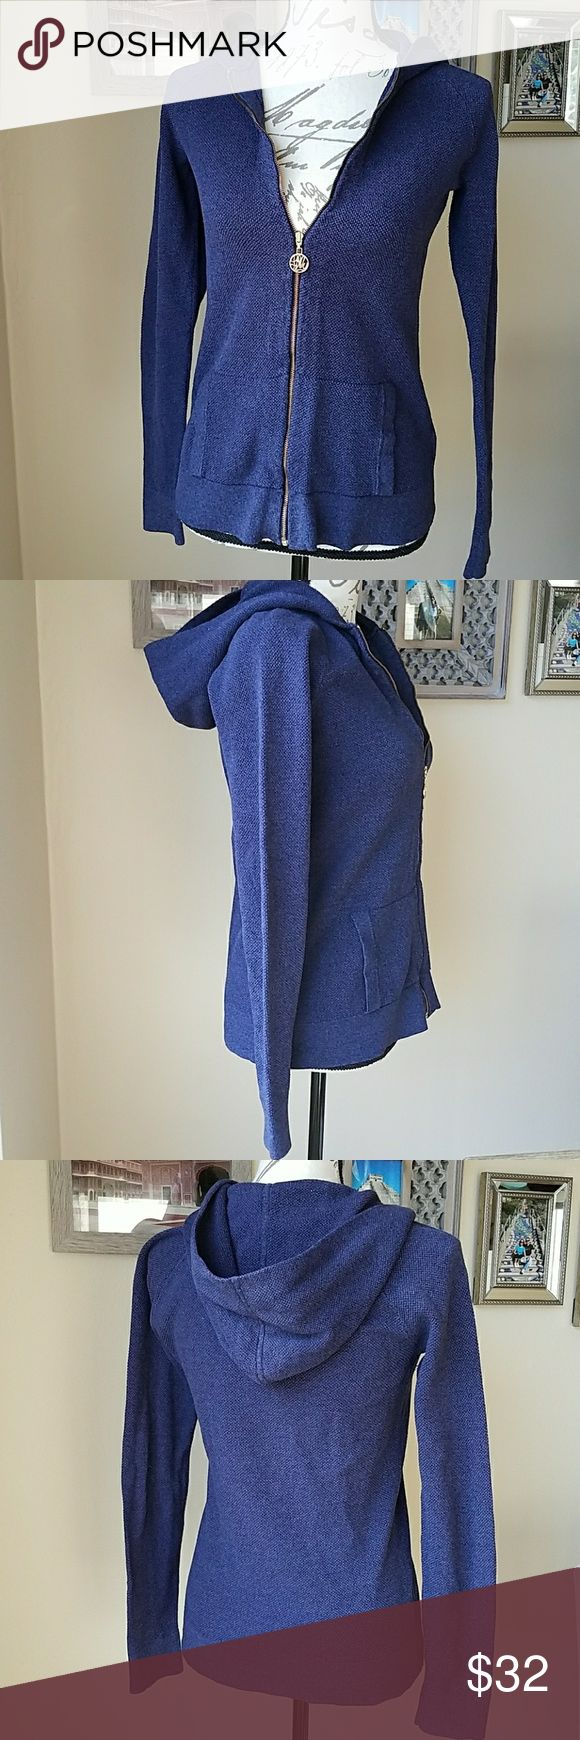 Lilly Pulitzer Zip Up Hoodie Classic fit long sleeve blue Lilly Pulitzer hoodie. Texture allover, front pockets and gold zip. 60% cotton, 24% viscose, 16% nylon. Length: 24', armpit to armpit: 16'. Pre loved but in very good conditions! Smoke free home. Lilly Pulitzer Sweaters Cardigans